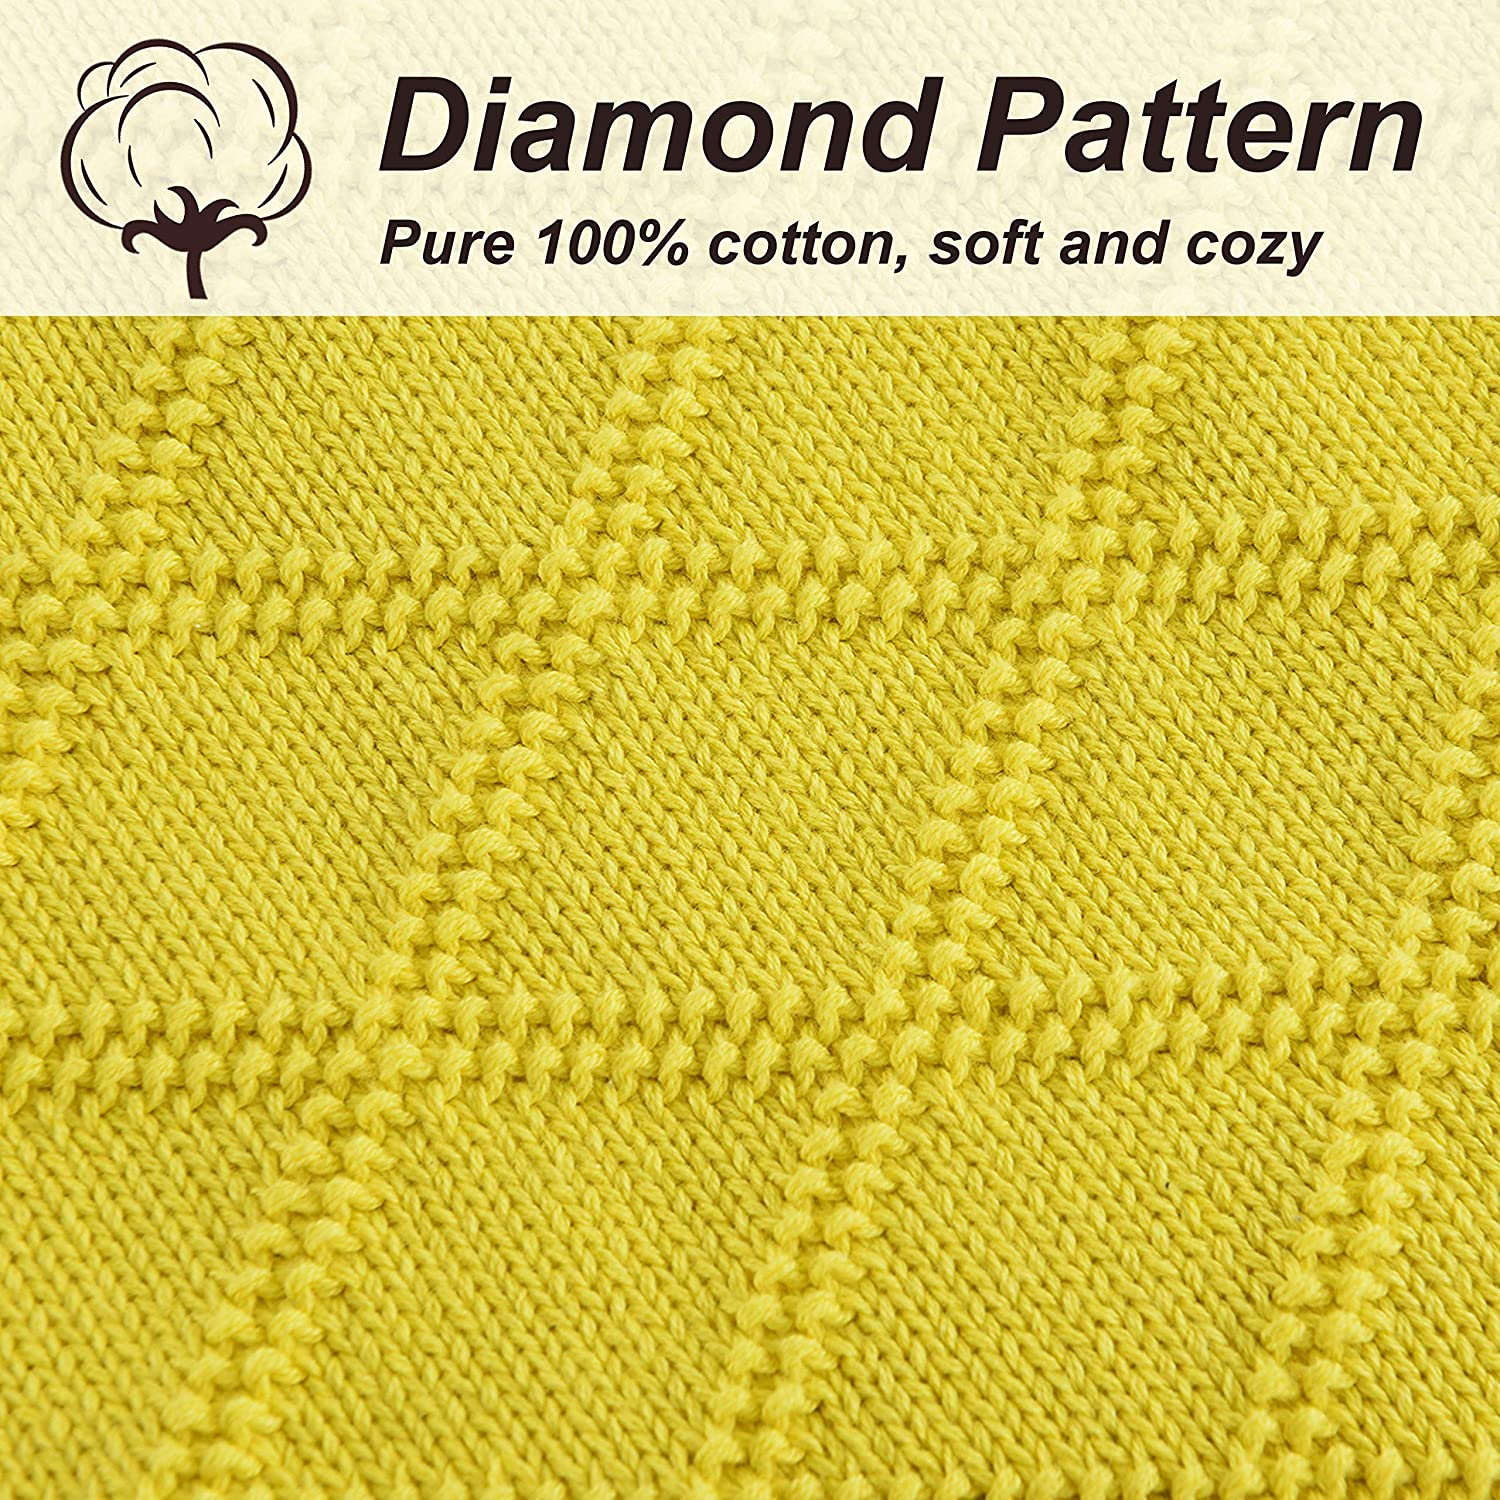 Cable Knit Throw Blanket 100/% Cotton Bed Throws Blanket for Couch Chairs Home Decorative 51x70in